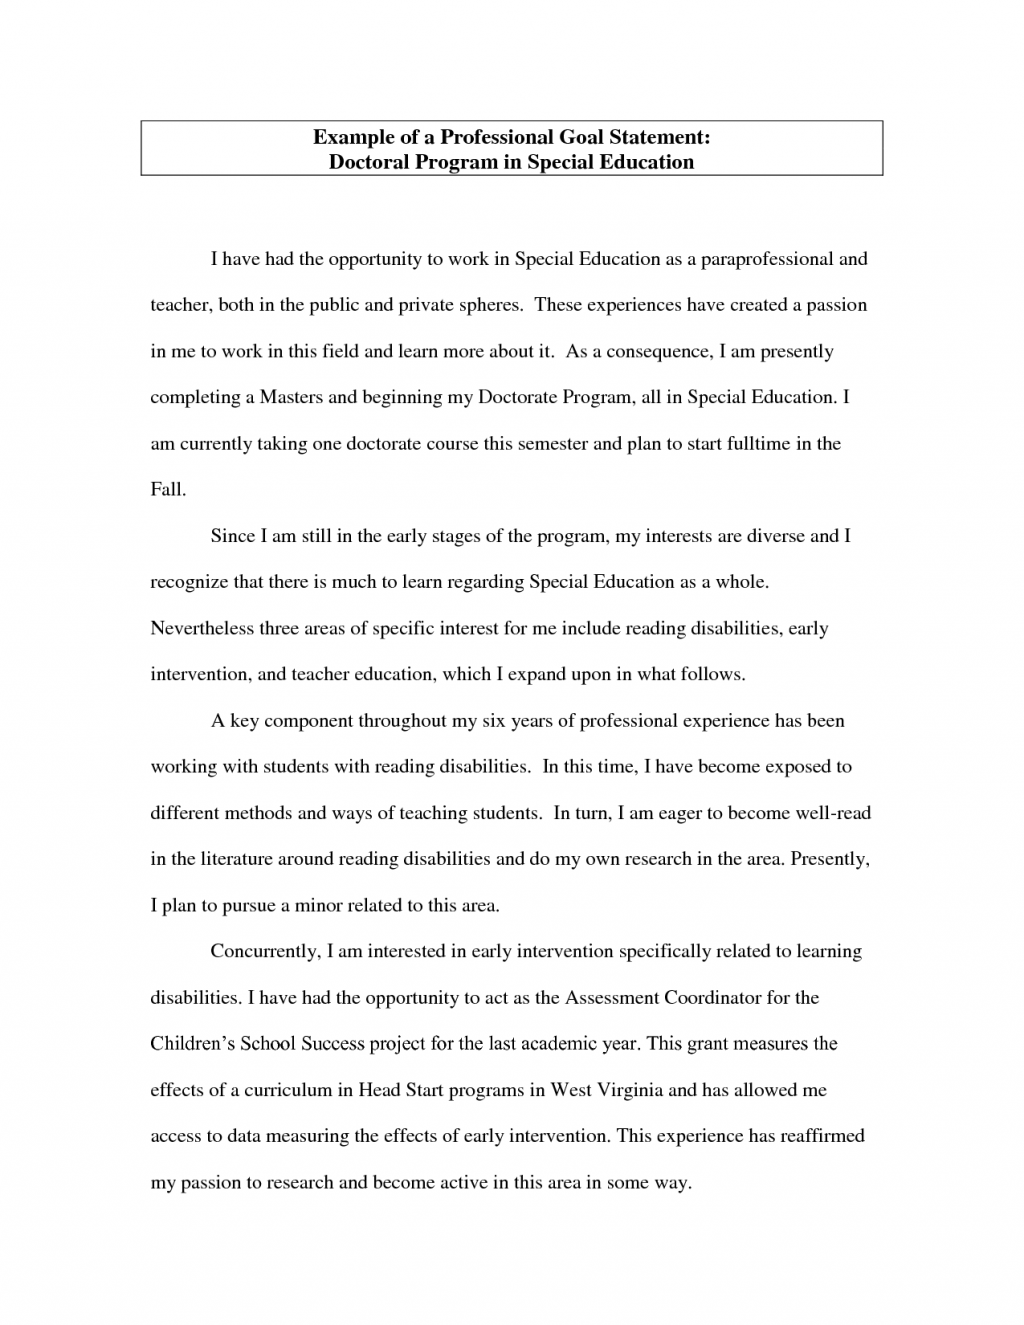 007 Research Paper Career Topics Essay Examples School Reports In Class Of Their Own Telegraph The Goal Statement Zdxttkpg Nursing20 Singular Related Full